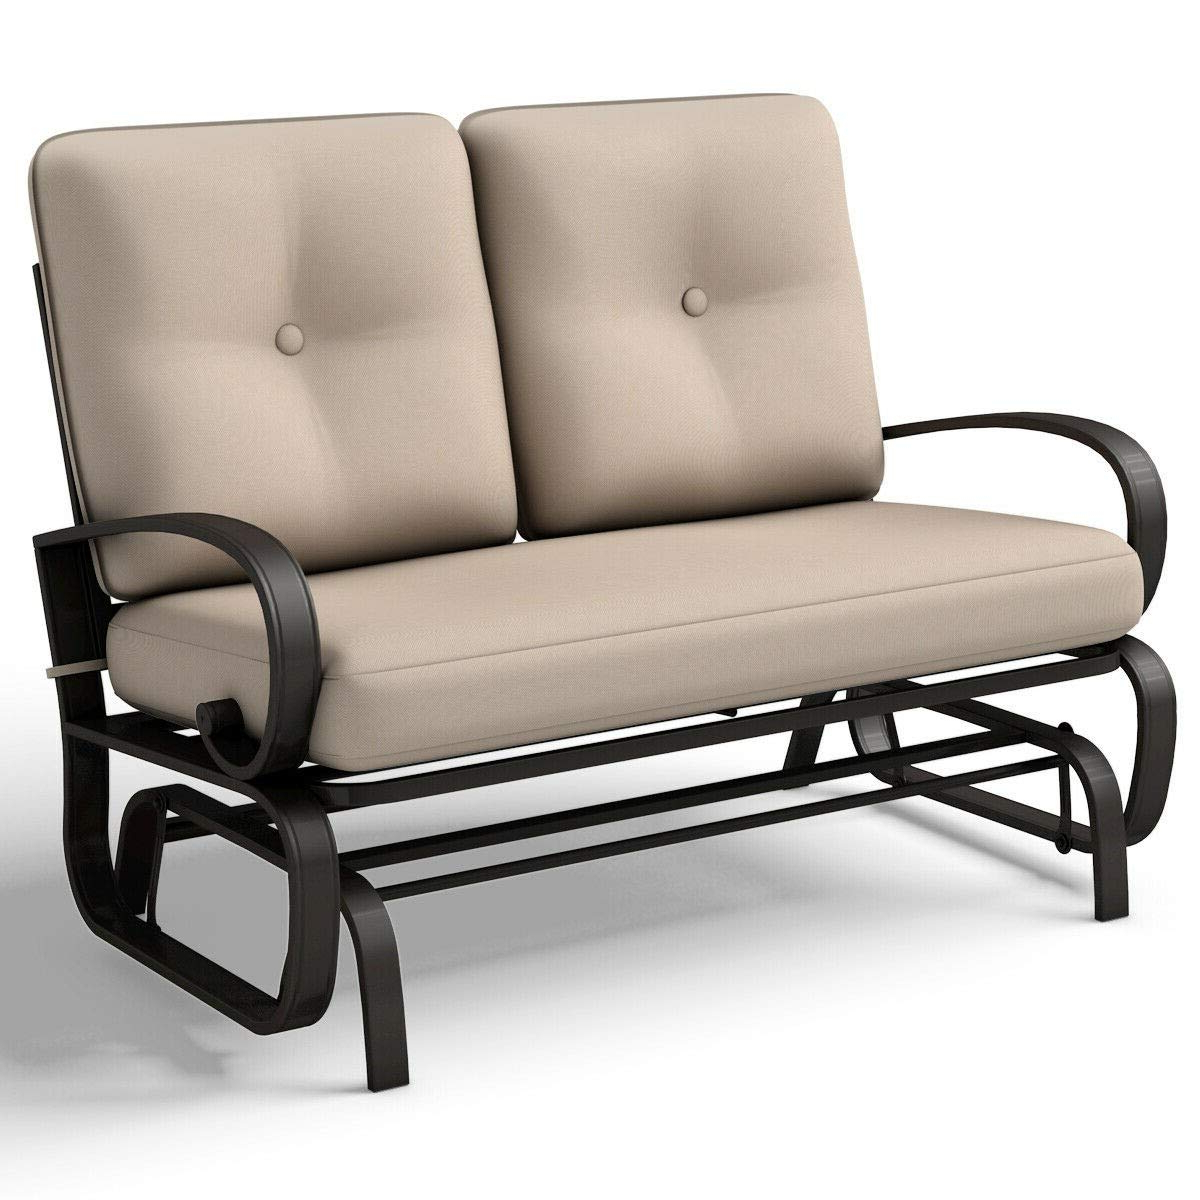 Glider Benches With Cushion With 2019 Amazon: Porch Glider Backyard Garden Patio Swing Chairs (View 19 of 30)